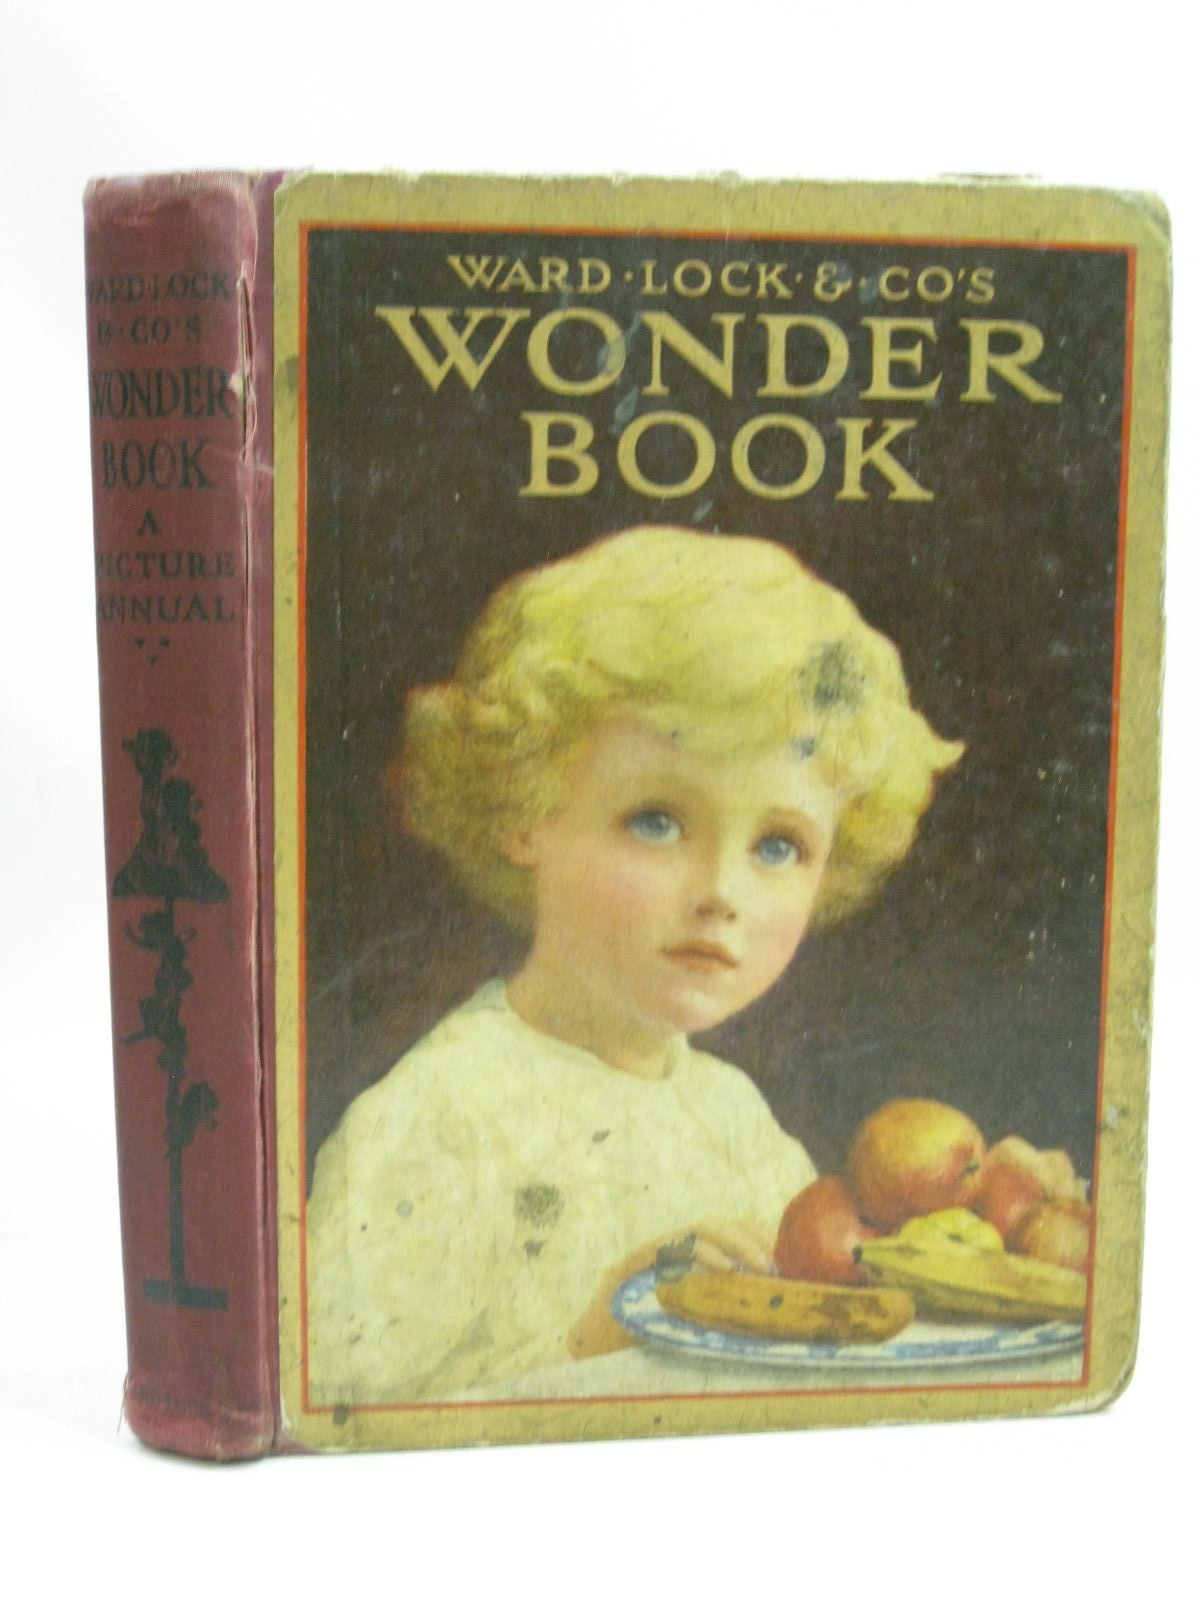 Photo of WARD LOCK & CO'S WONDER BOOK 1927 written by Golding, Harry illustrated by Brisley, Nina K. Tarrant, Margaret Temple, Chris G. Wright, Alan et al., published by Ward, Lock & Co. Limited (STOCK CODE: 1405231)  for sale by Stella & Rose's Books